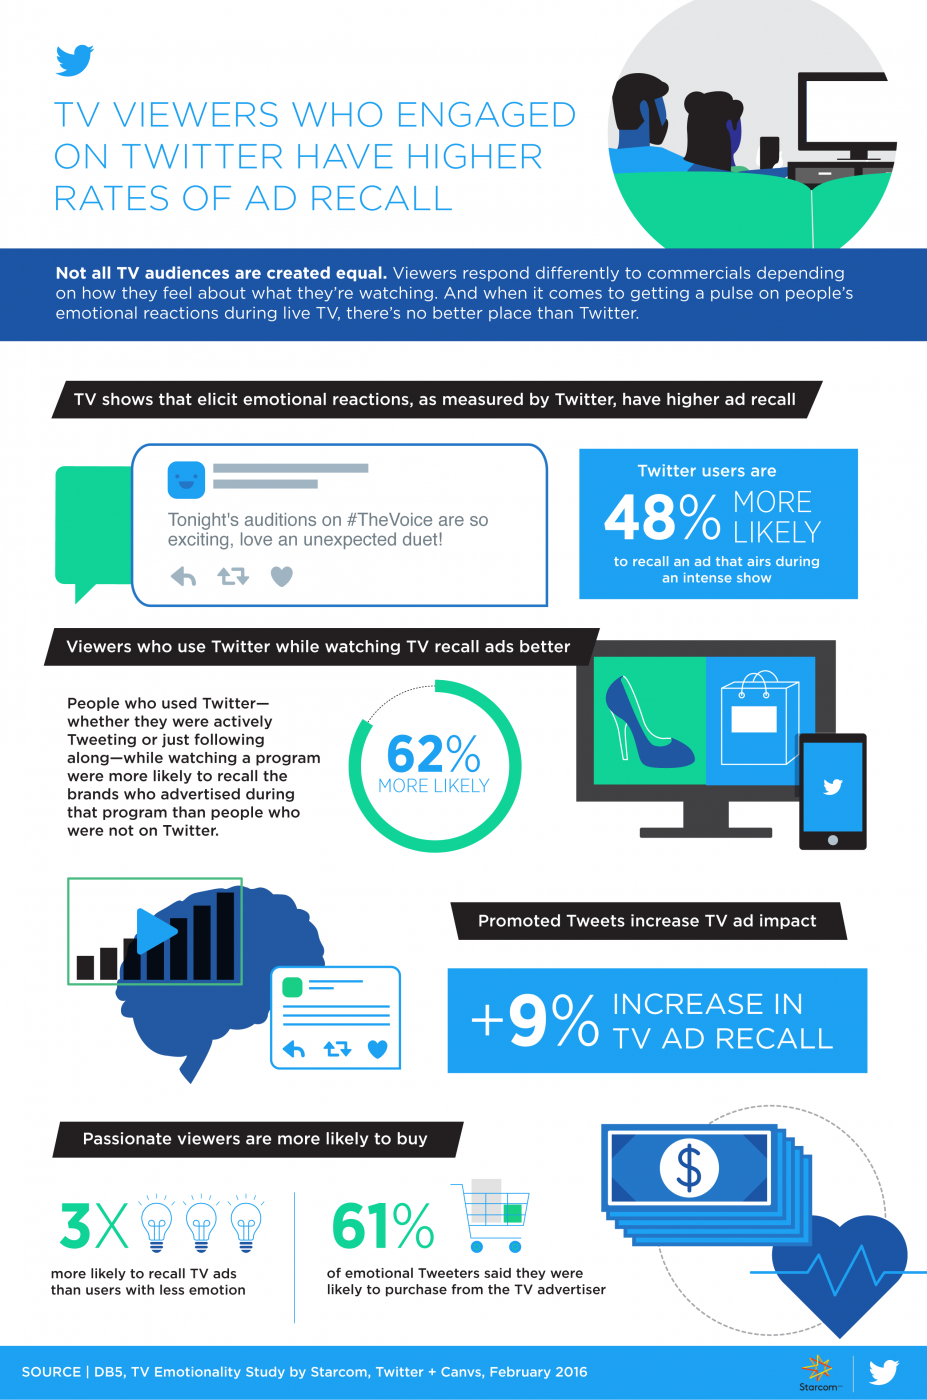 Twitter Releases New Data on TV Viewership and Ad Recall [Infographic] | Social Media Today